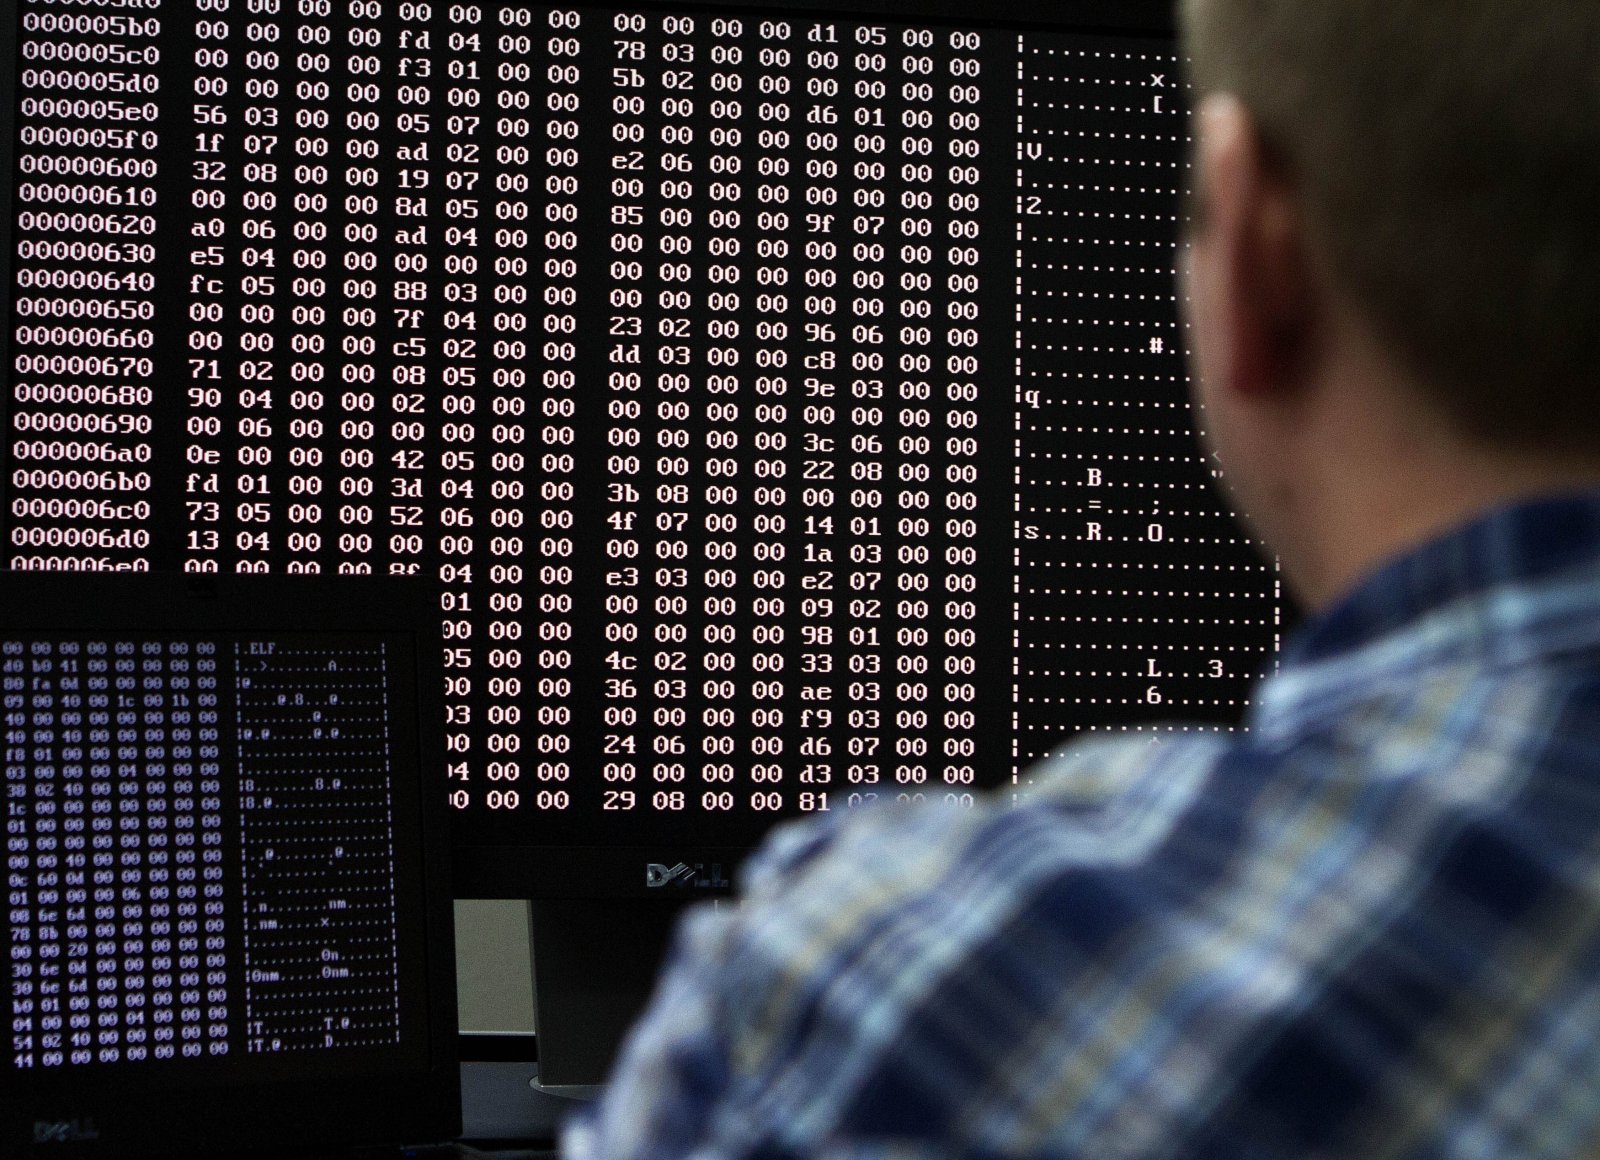 Banking Trojan Gozym botnet sinkholed after infecting over 23,000 victims in UK, US and Europe